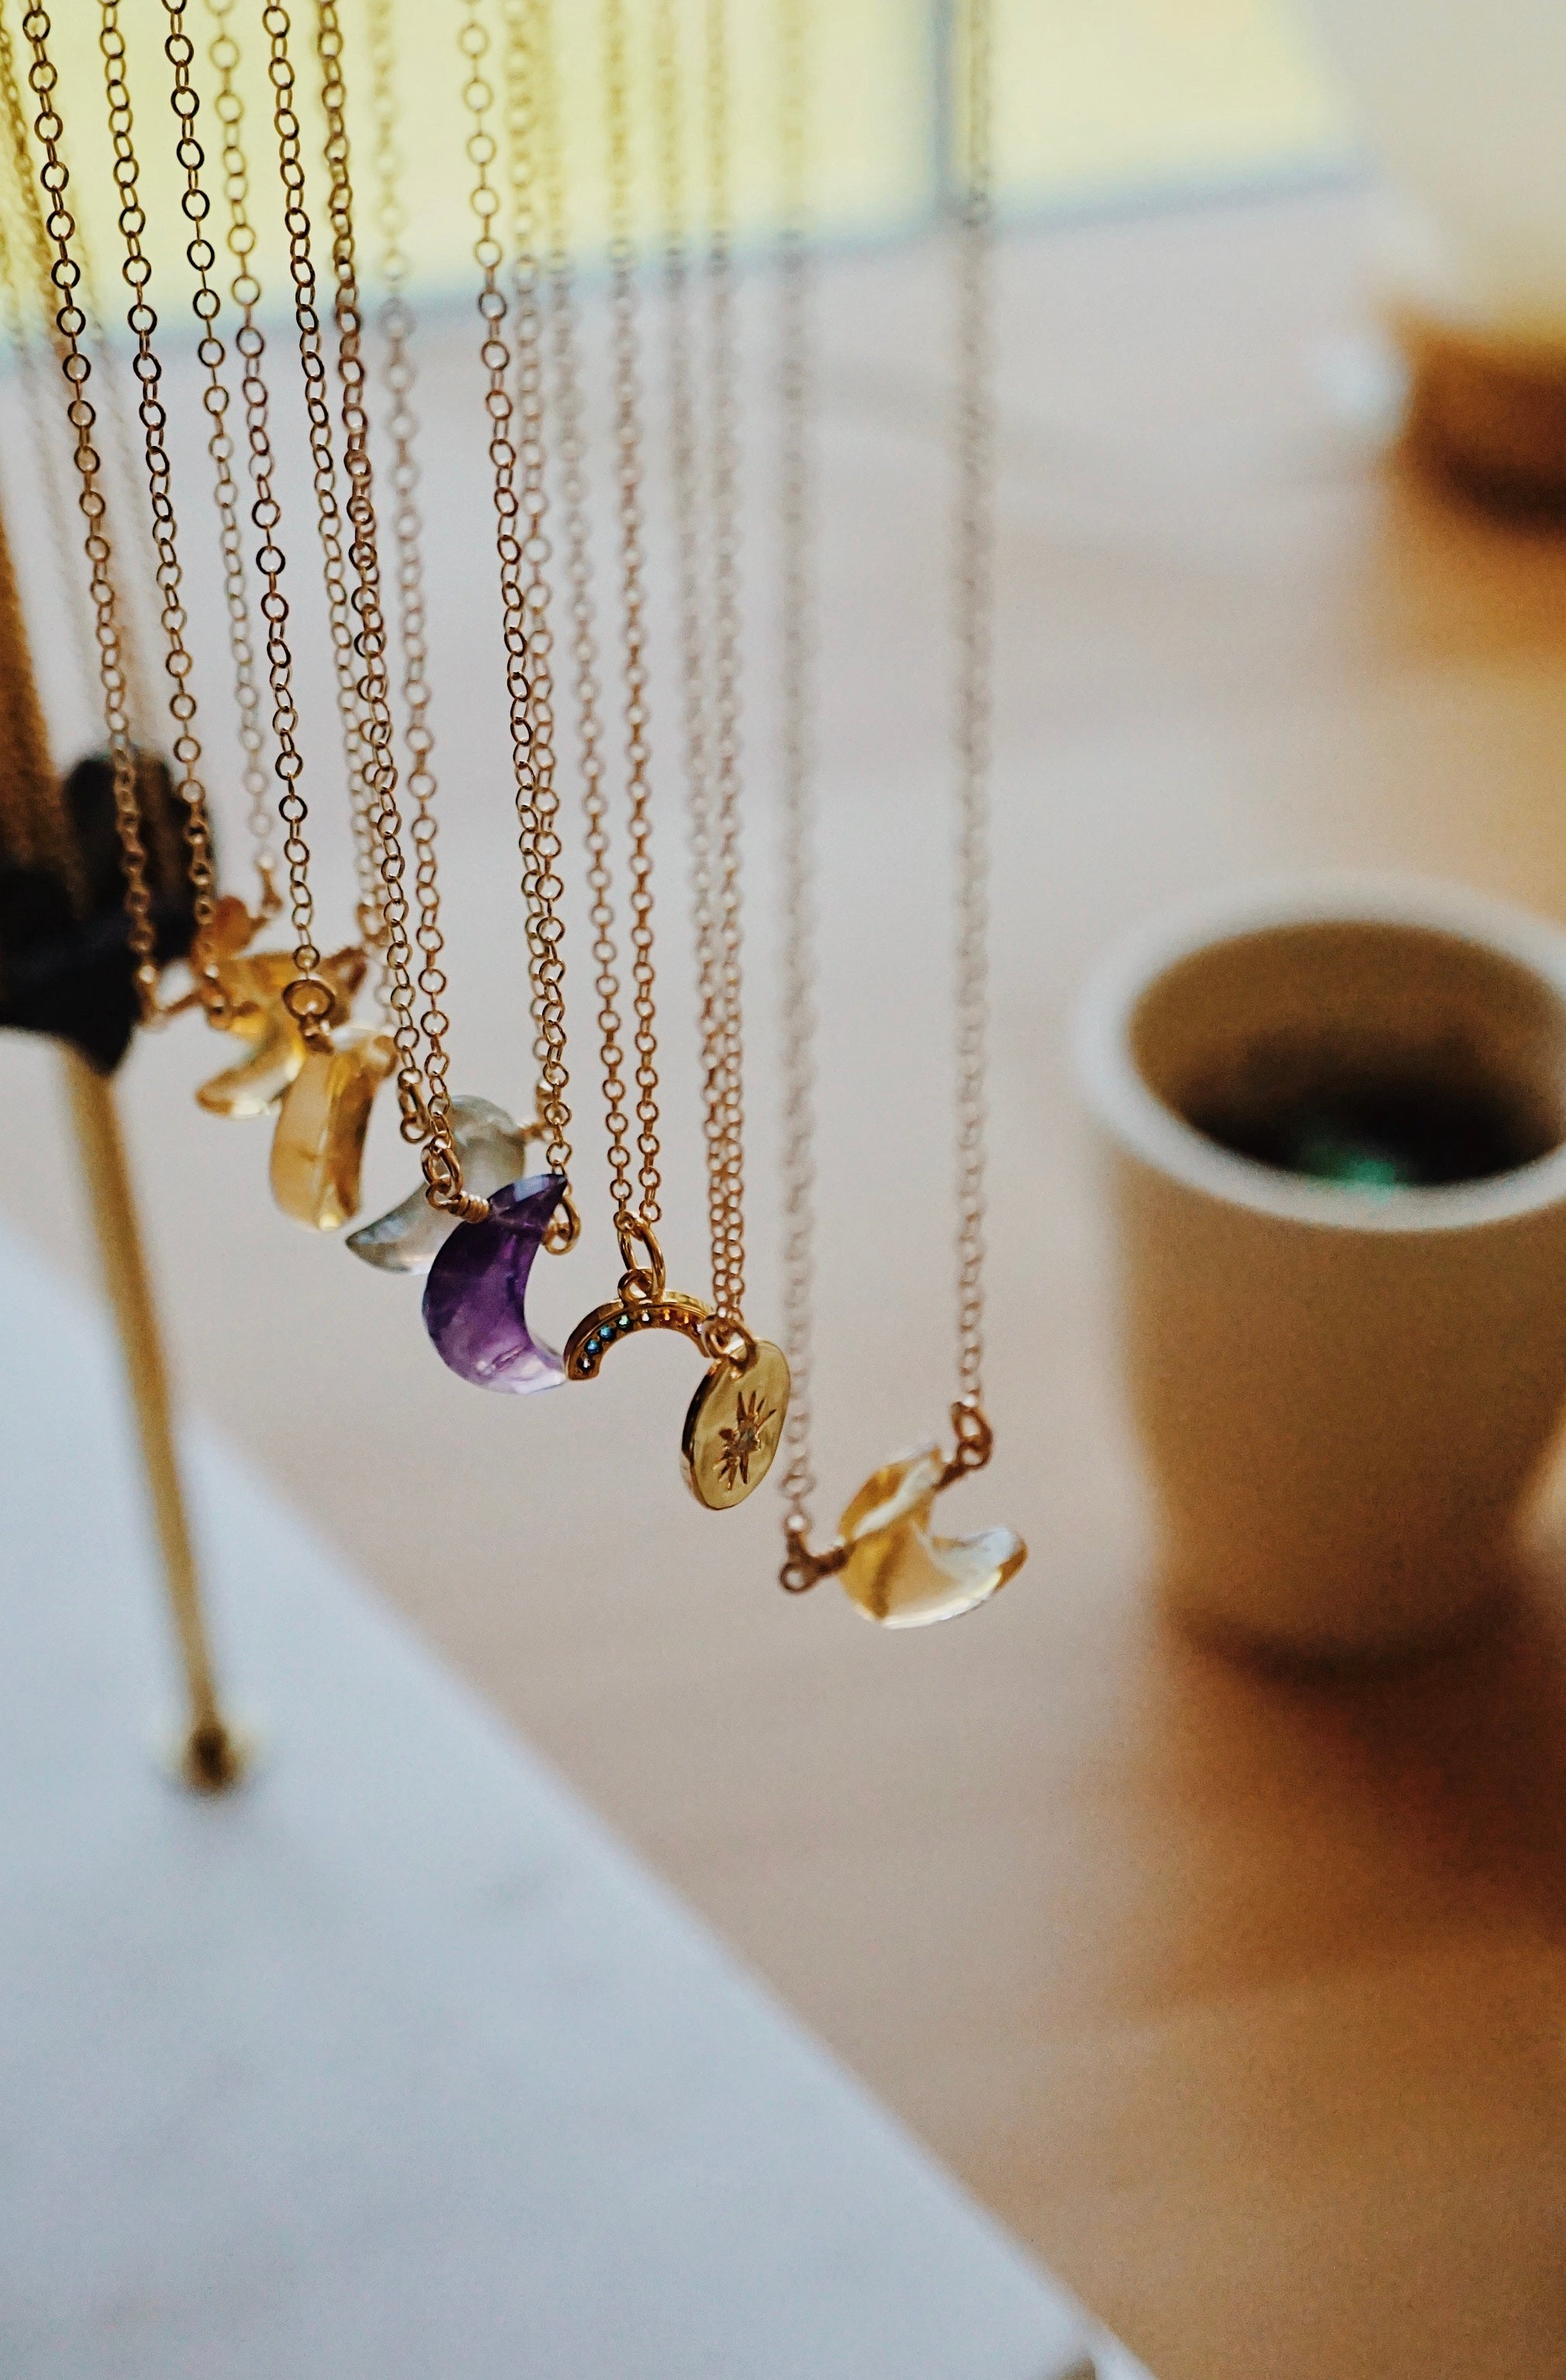 LUNA ✶ Celestial Collection ✶ Dainty Citrine & Labradorite Crescent Moon Necklace + Lava Charm